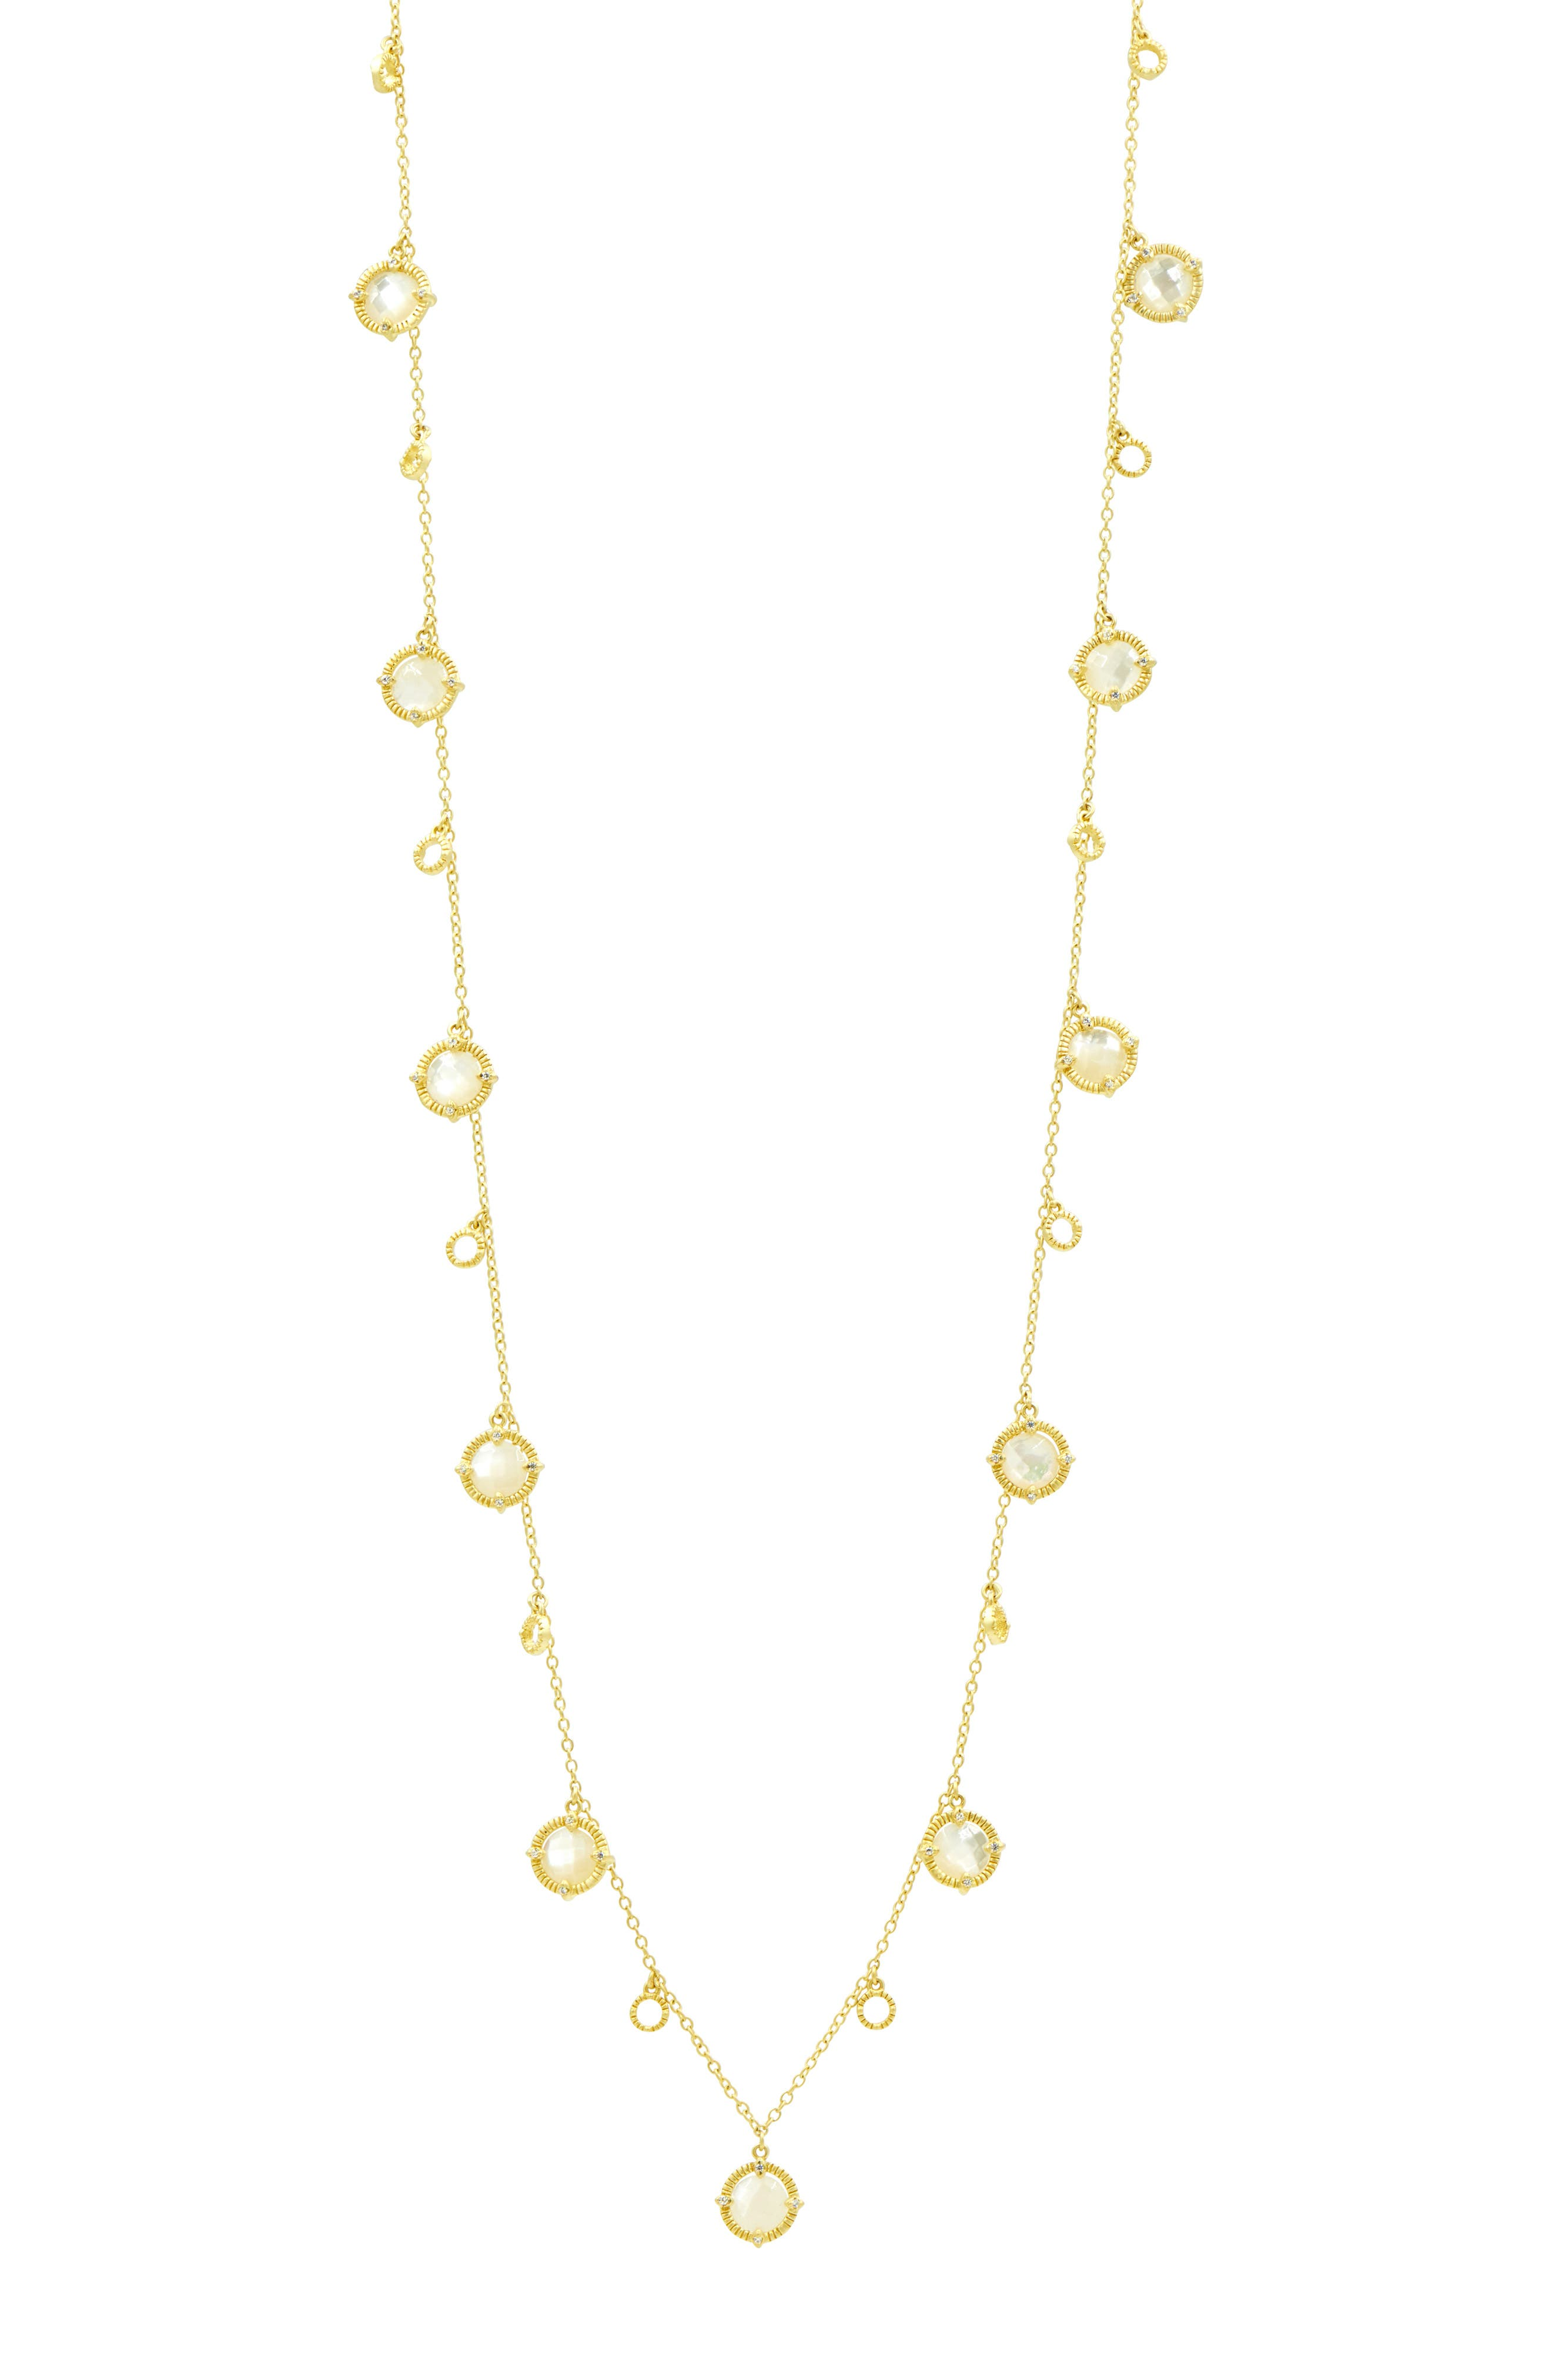 FREIDA ROTHMAN Color Theory Stone Droplet Necklace in Mother Of Pearl/ Gold